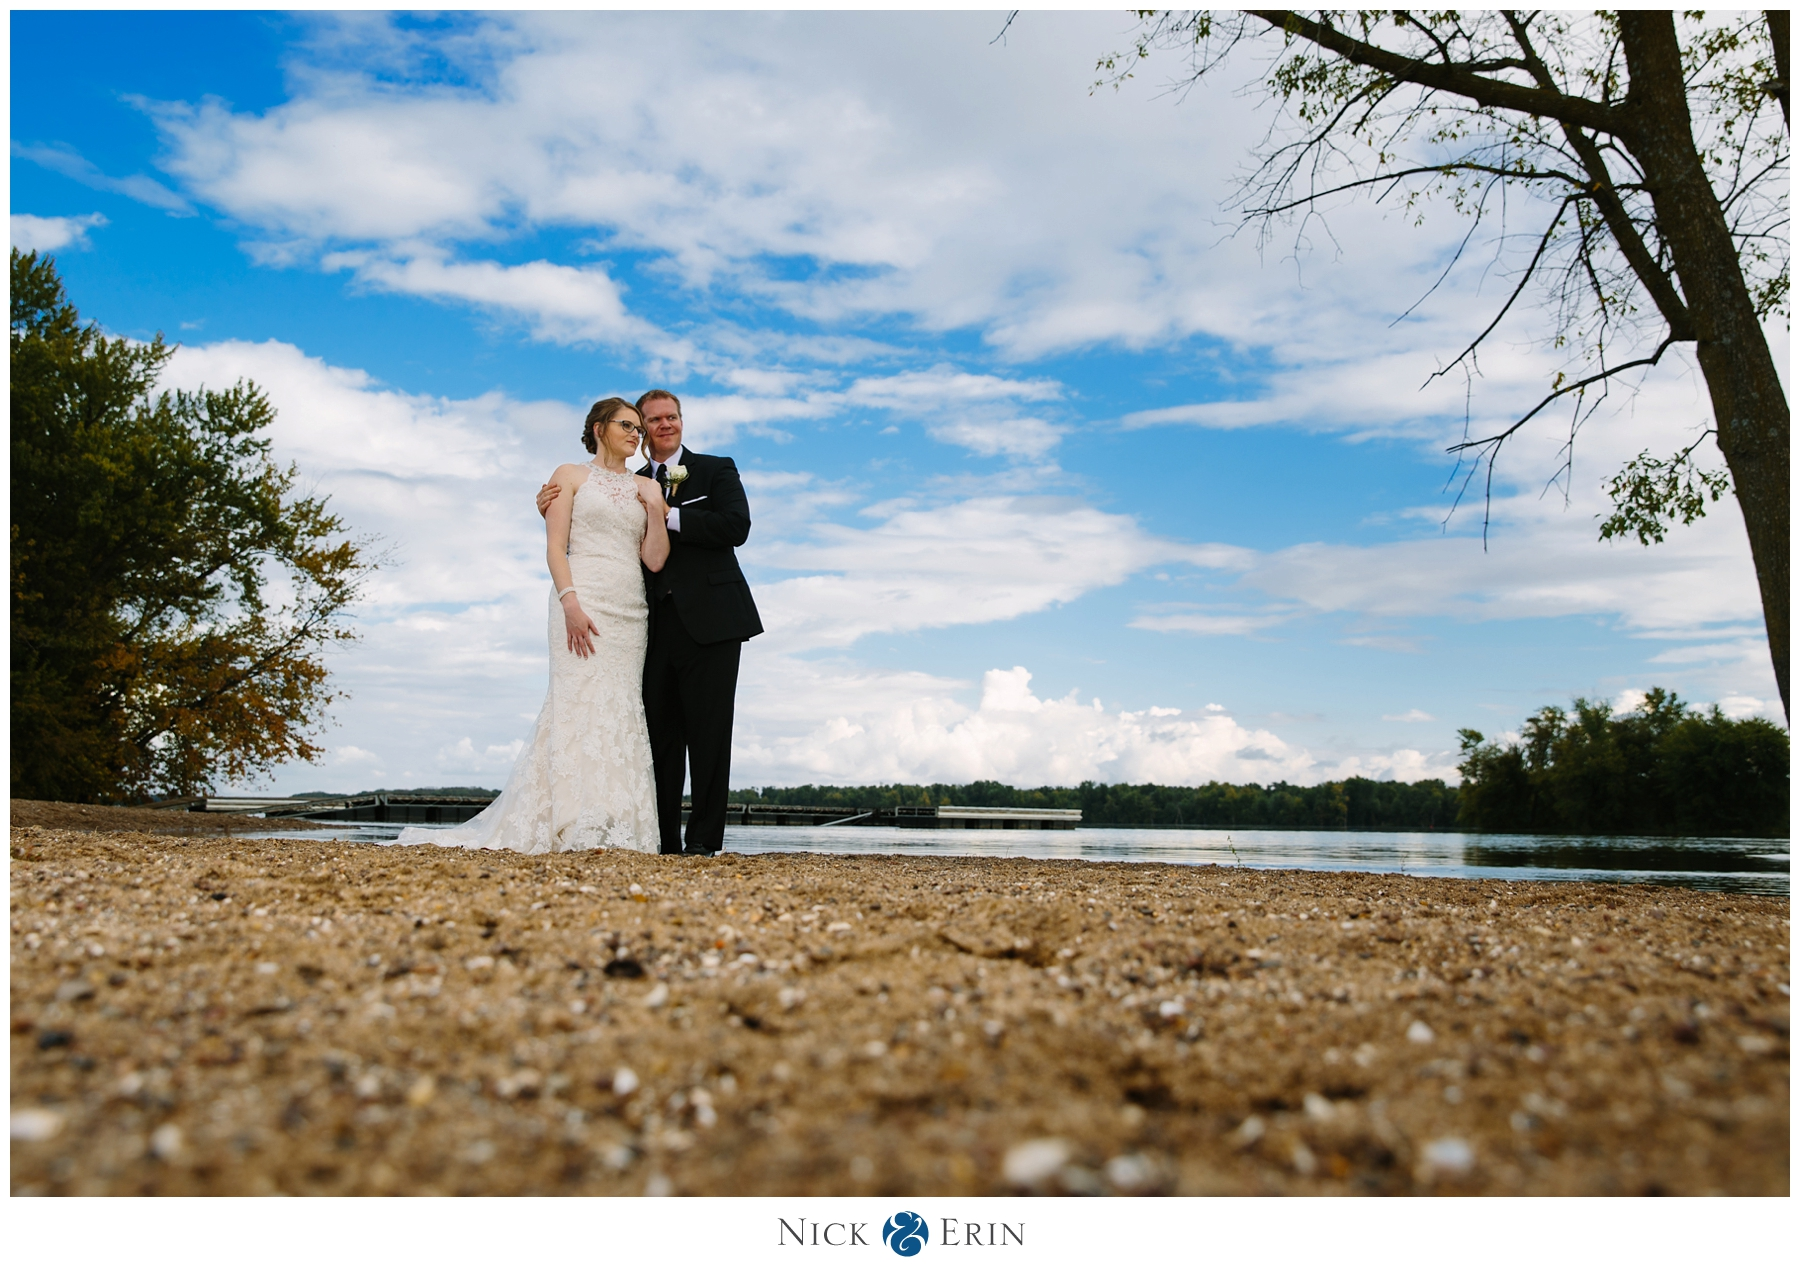 donner_photography_iowa-wedding_katie-chris_0005